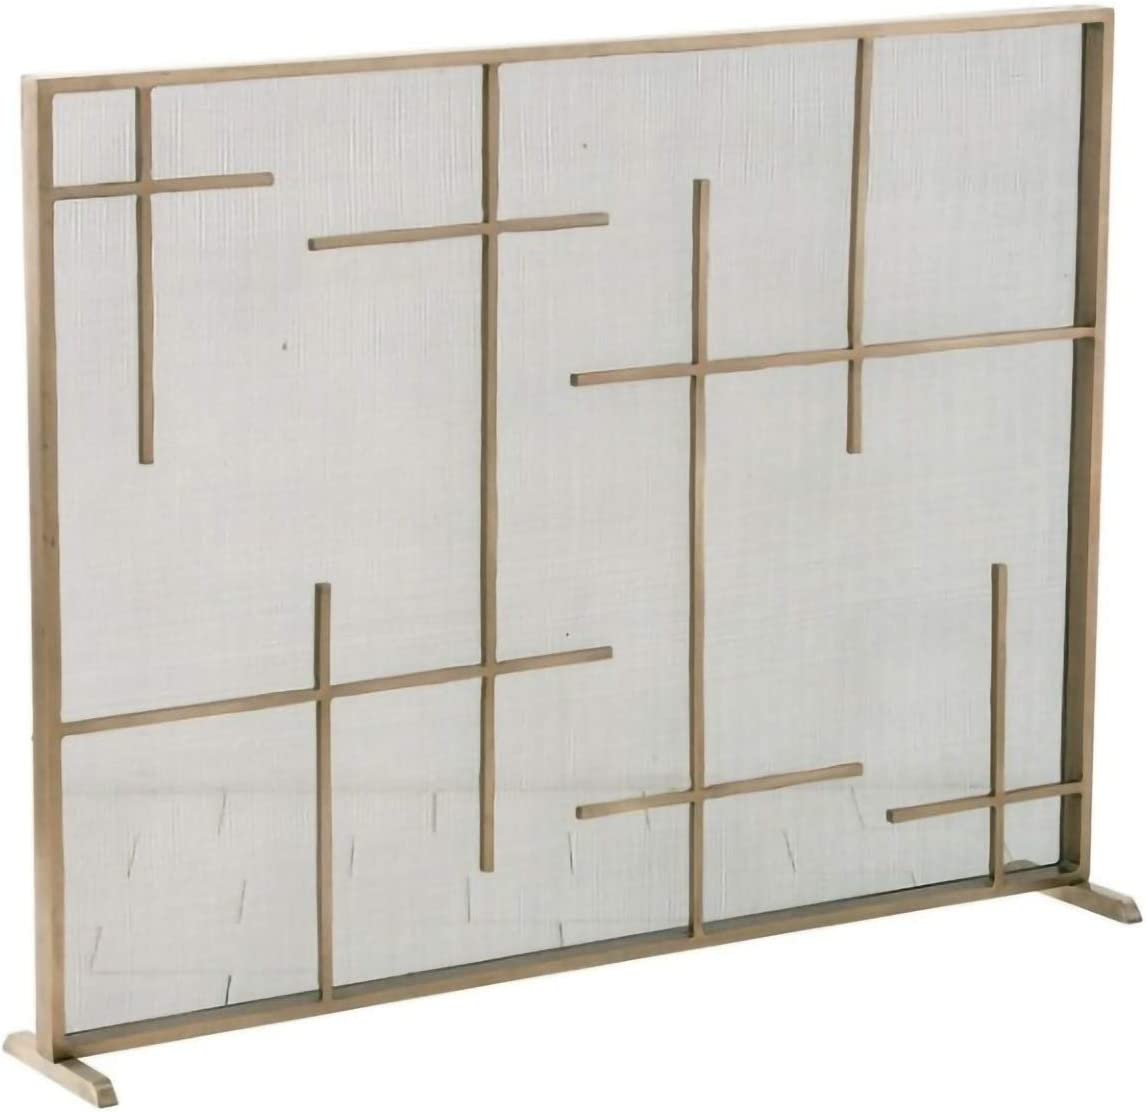 Direct sale of manufacturer YYLL Fireplace Tucson Mall Screen with Net Gold Wr Guardrail Fire